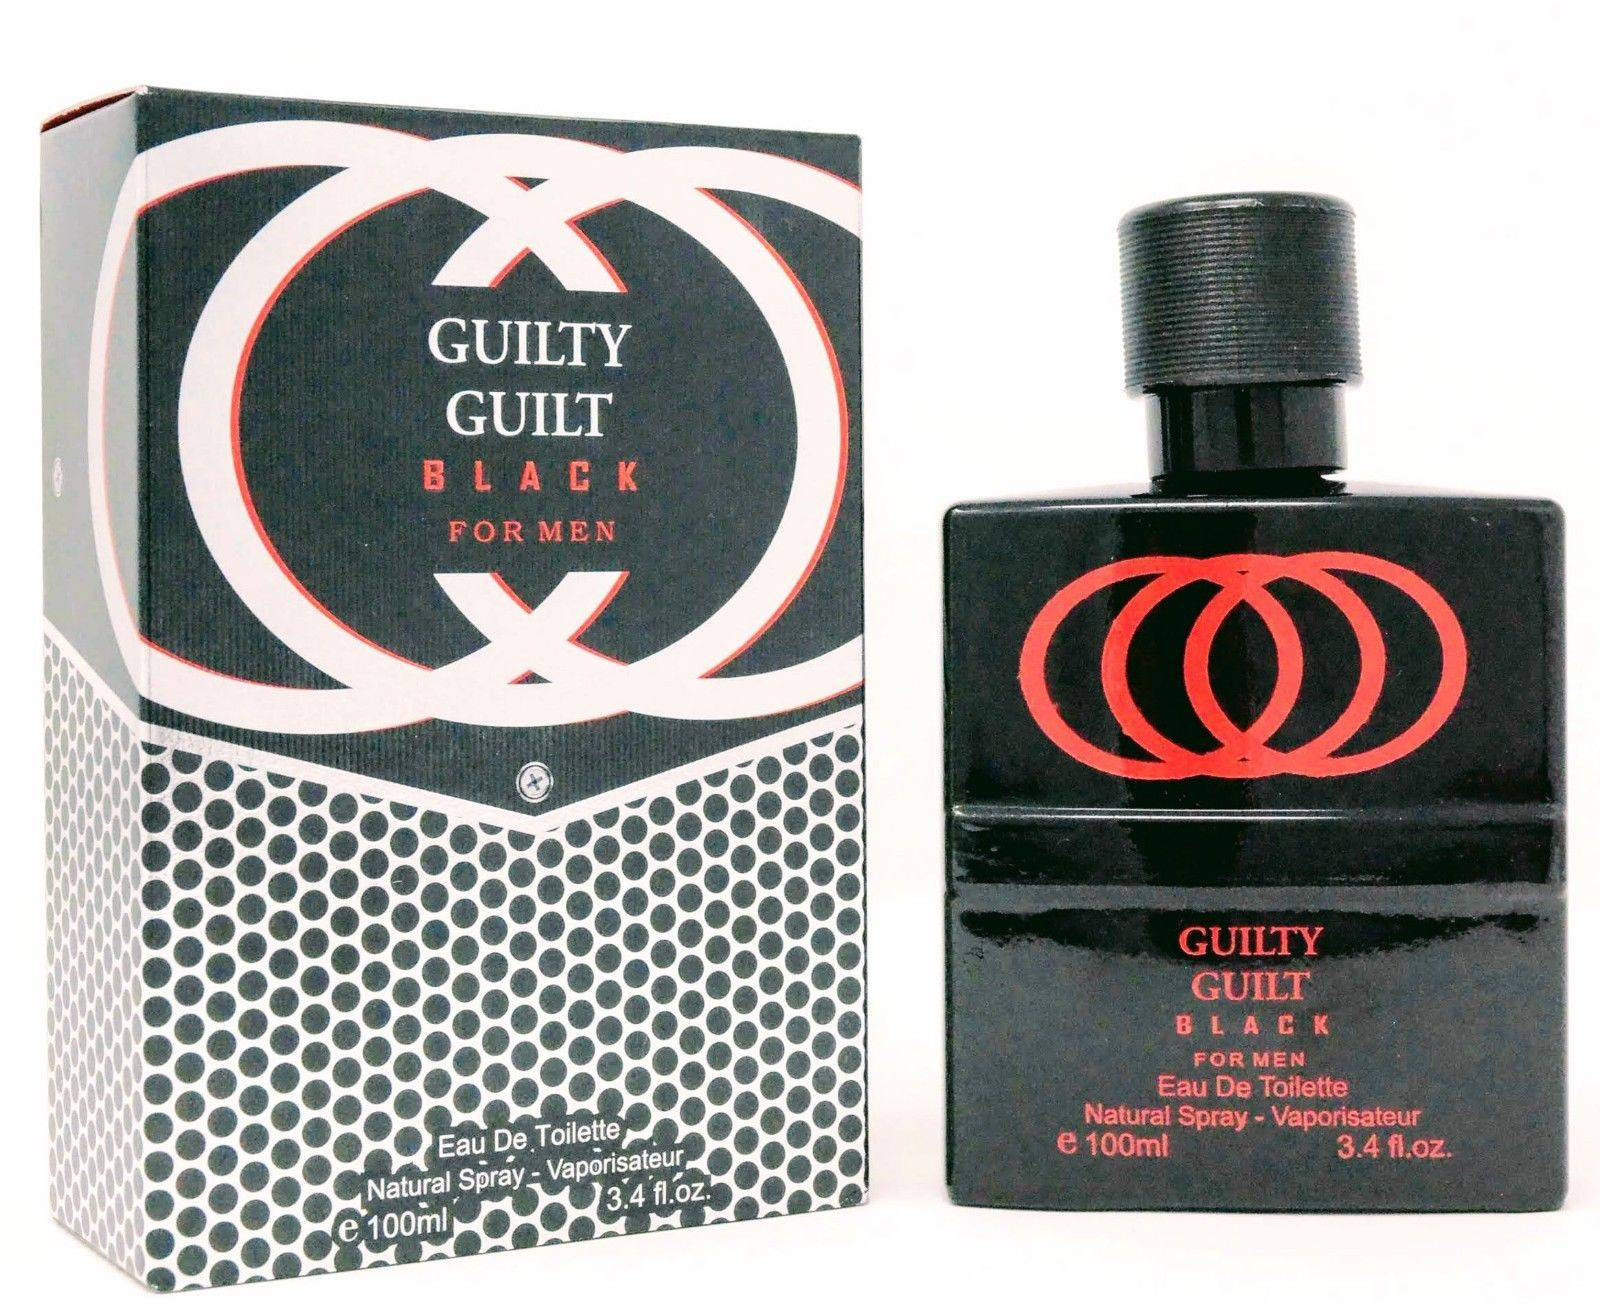 7330179b4 our version of GUCCI GUILTY (GUILTY GUILT BLACK)